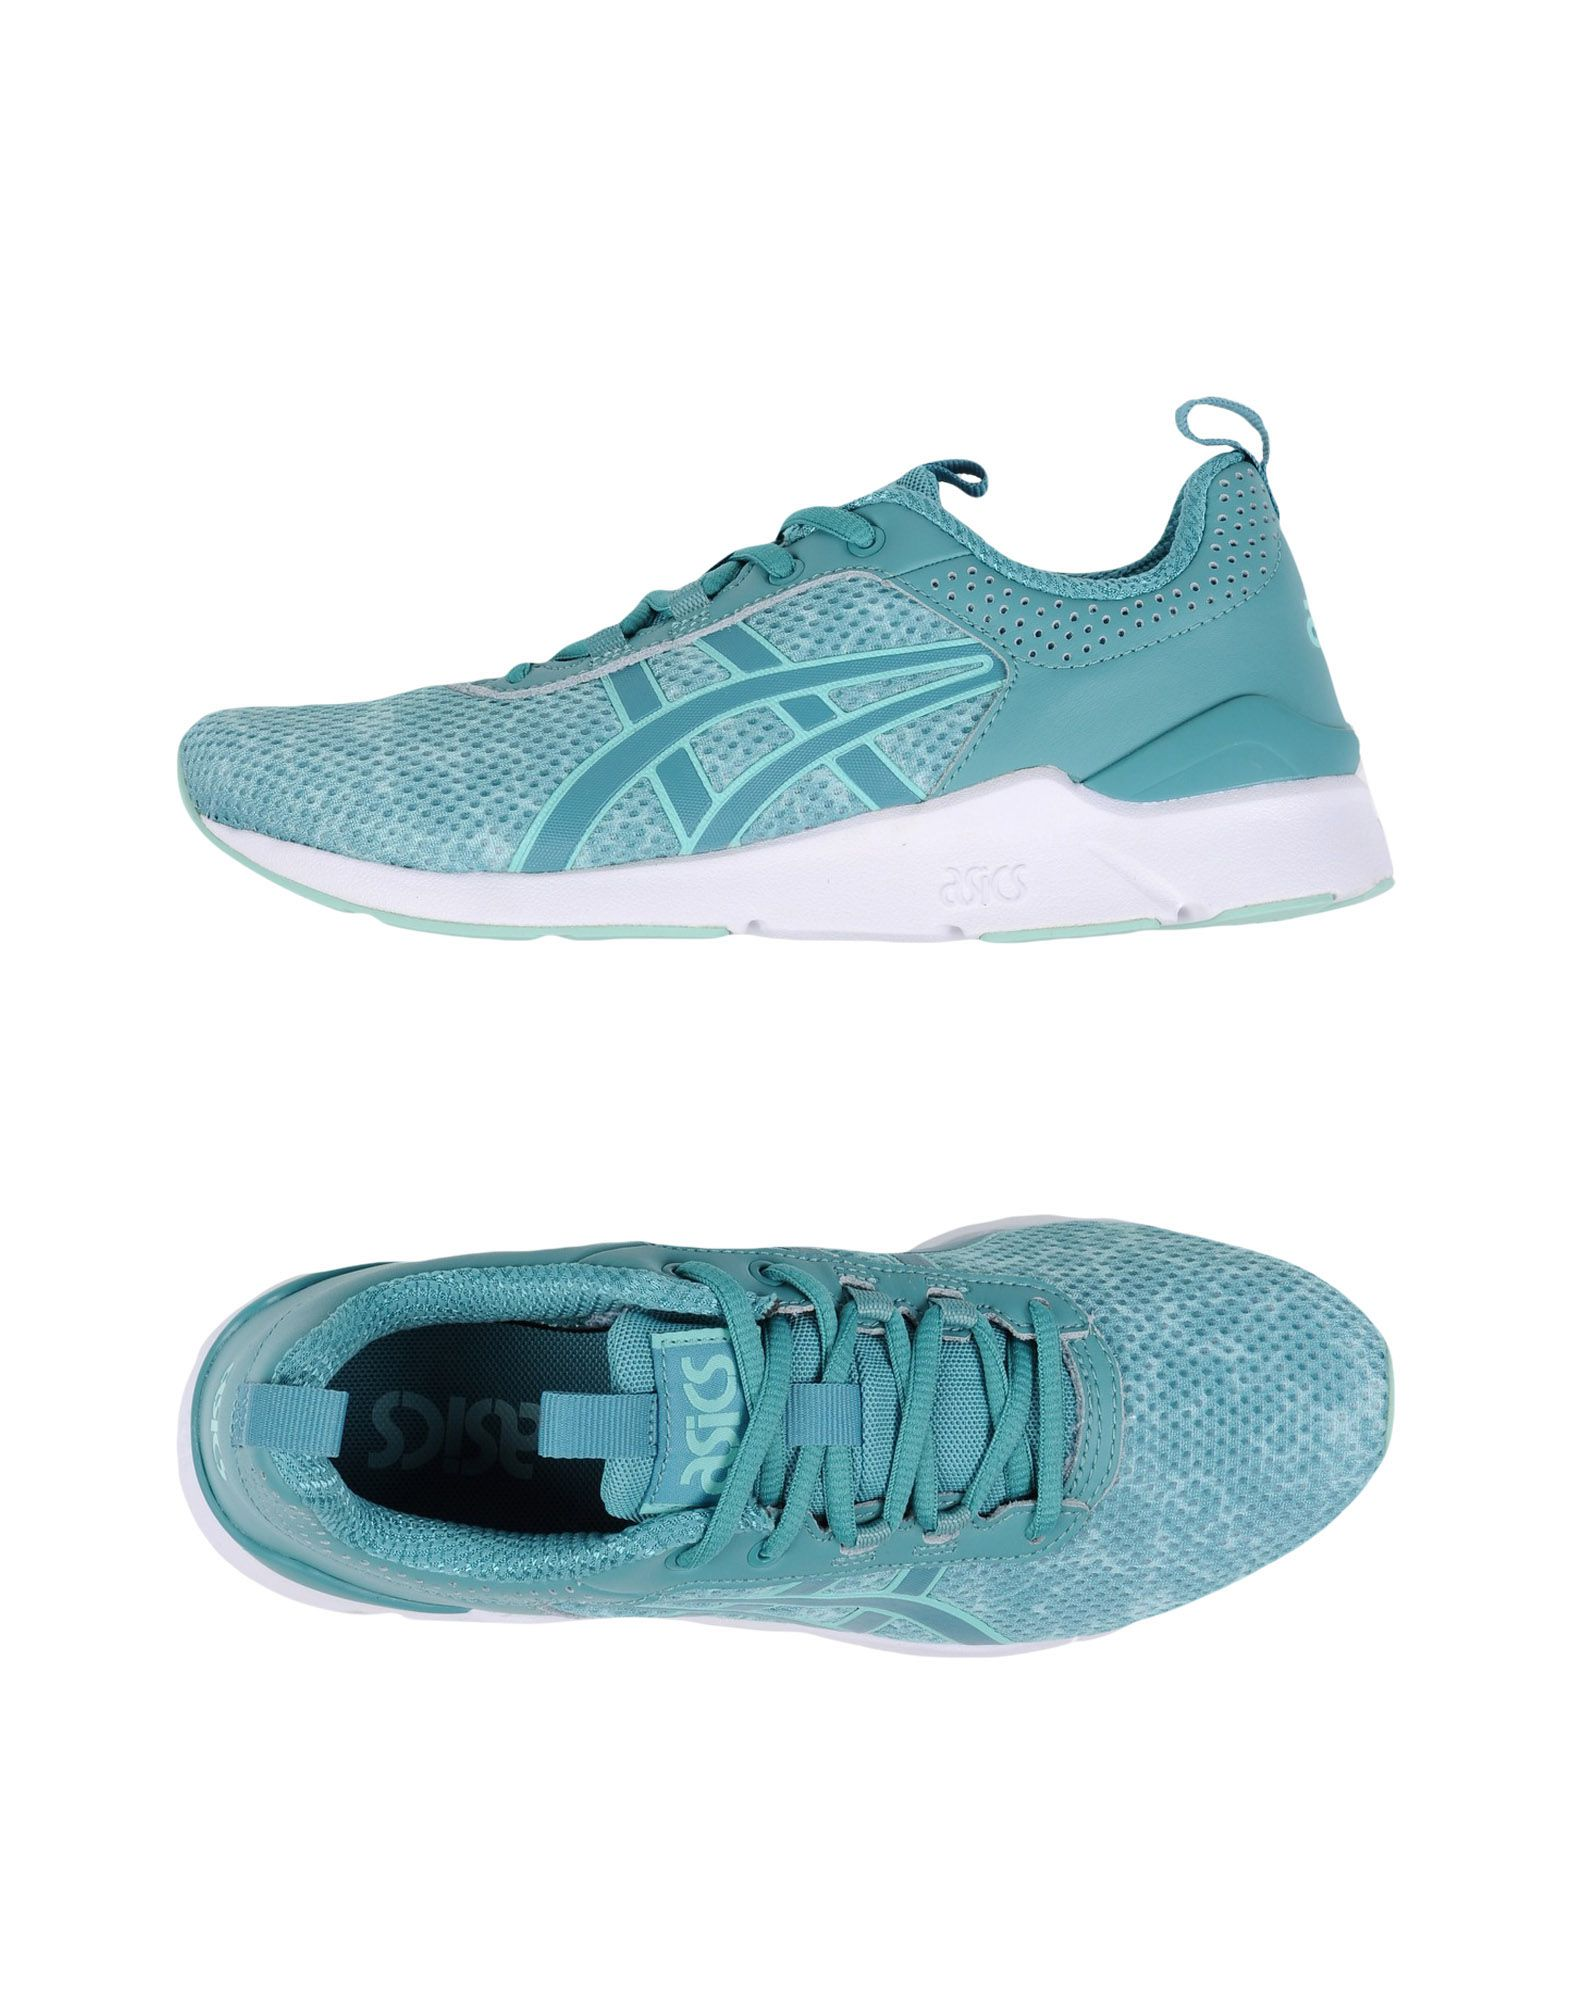 Asics Sneakers Tiger Gel-Lyte Runner - Sneakers Asics - Women Asics Tiger Sneakers online on  United Kingdom - 11141025JT 4a393a